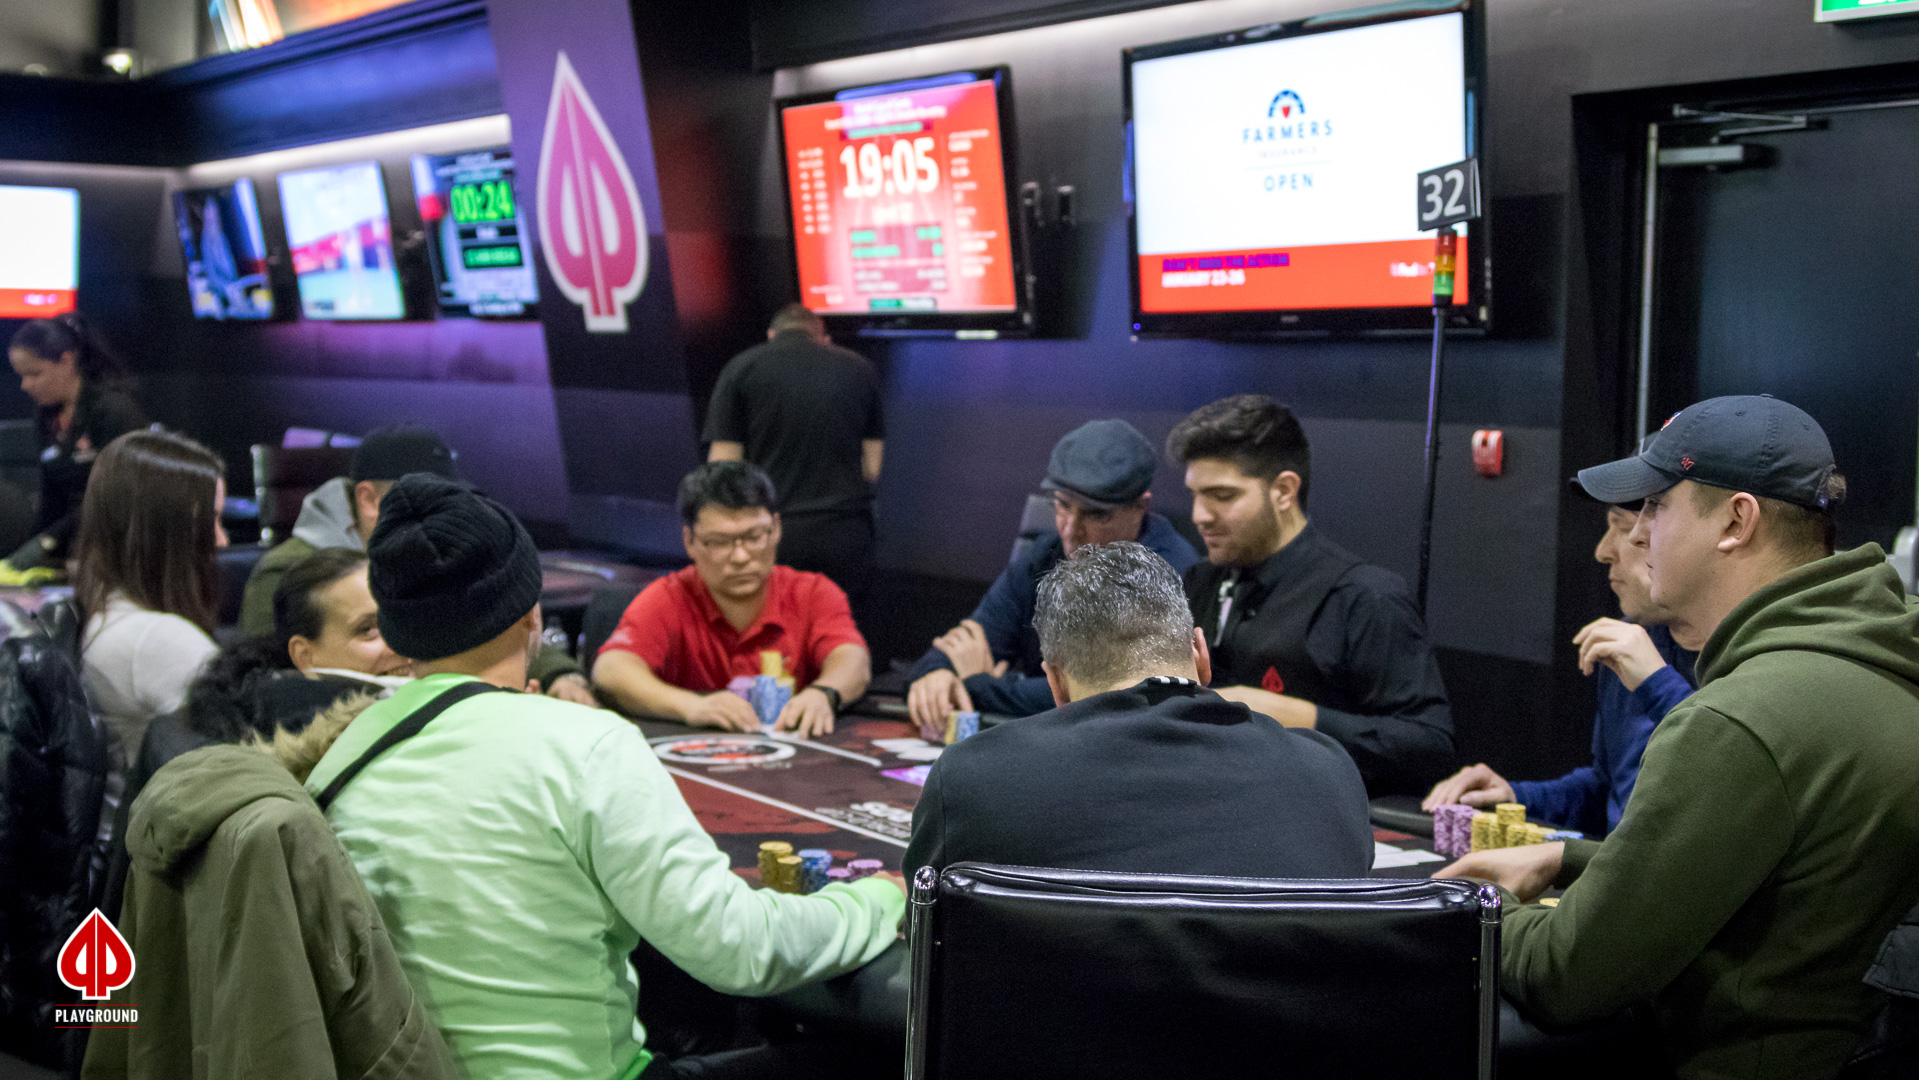 The final table has made a bubble deal